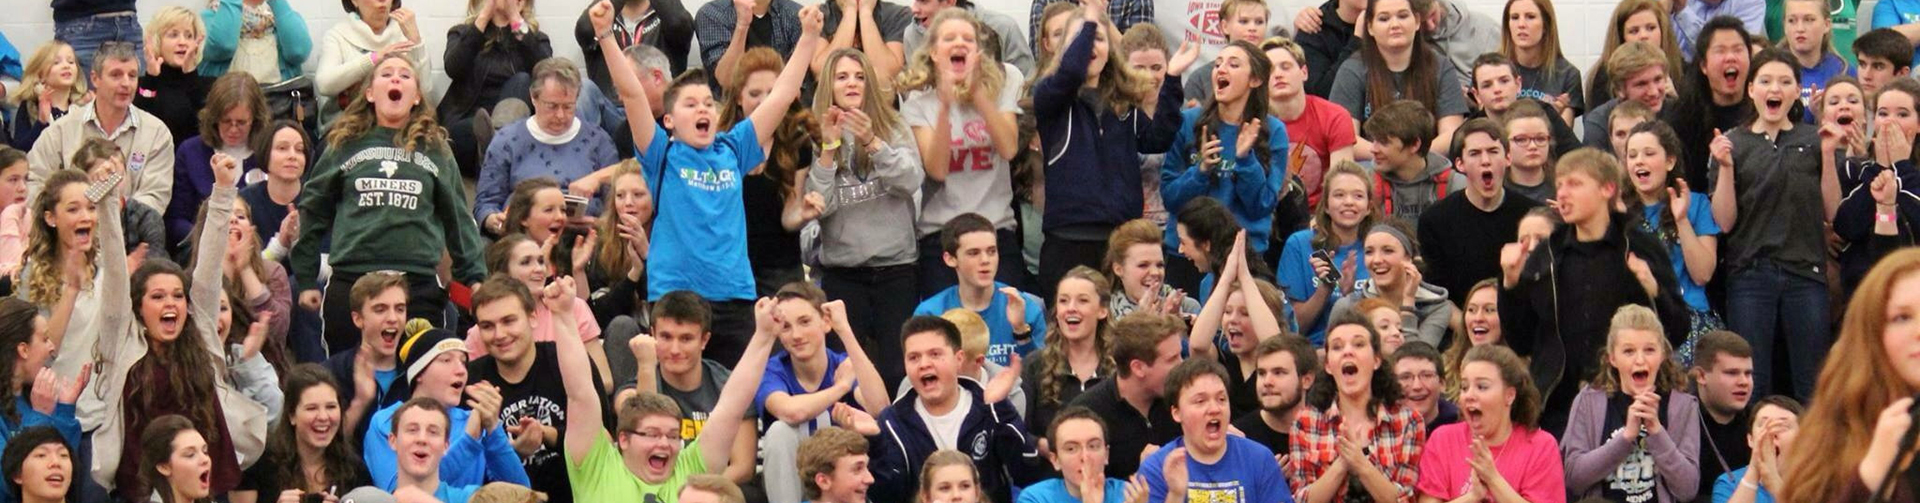 Des Moines Christian School High School Students Cheering